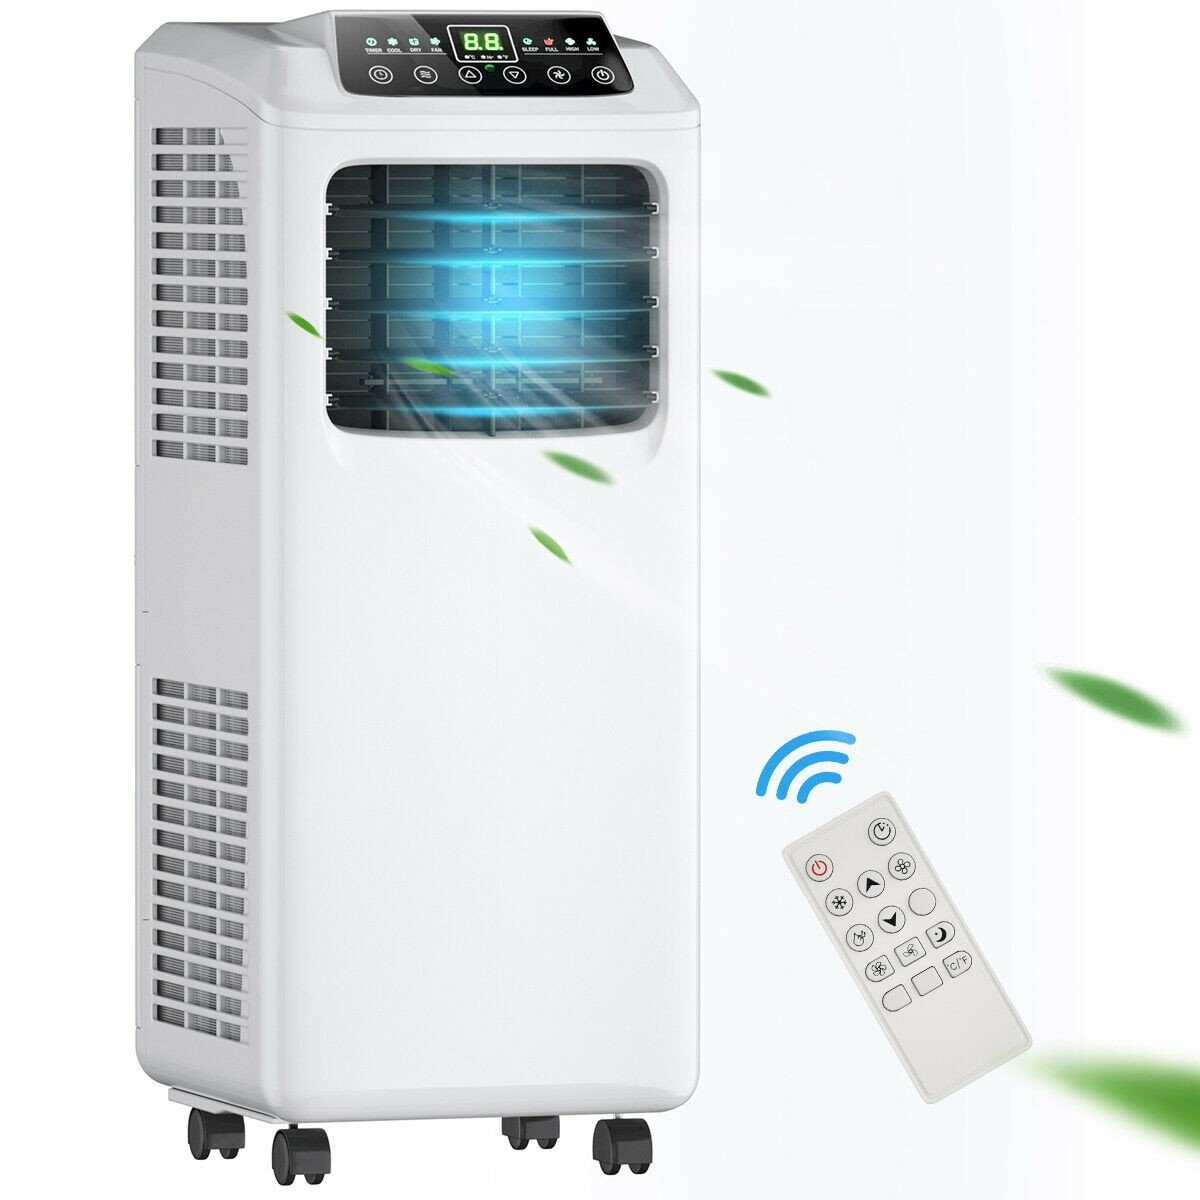 Premium Portable Air Conditioner Stand Up Room Cooler ...